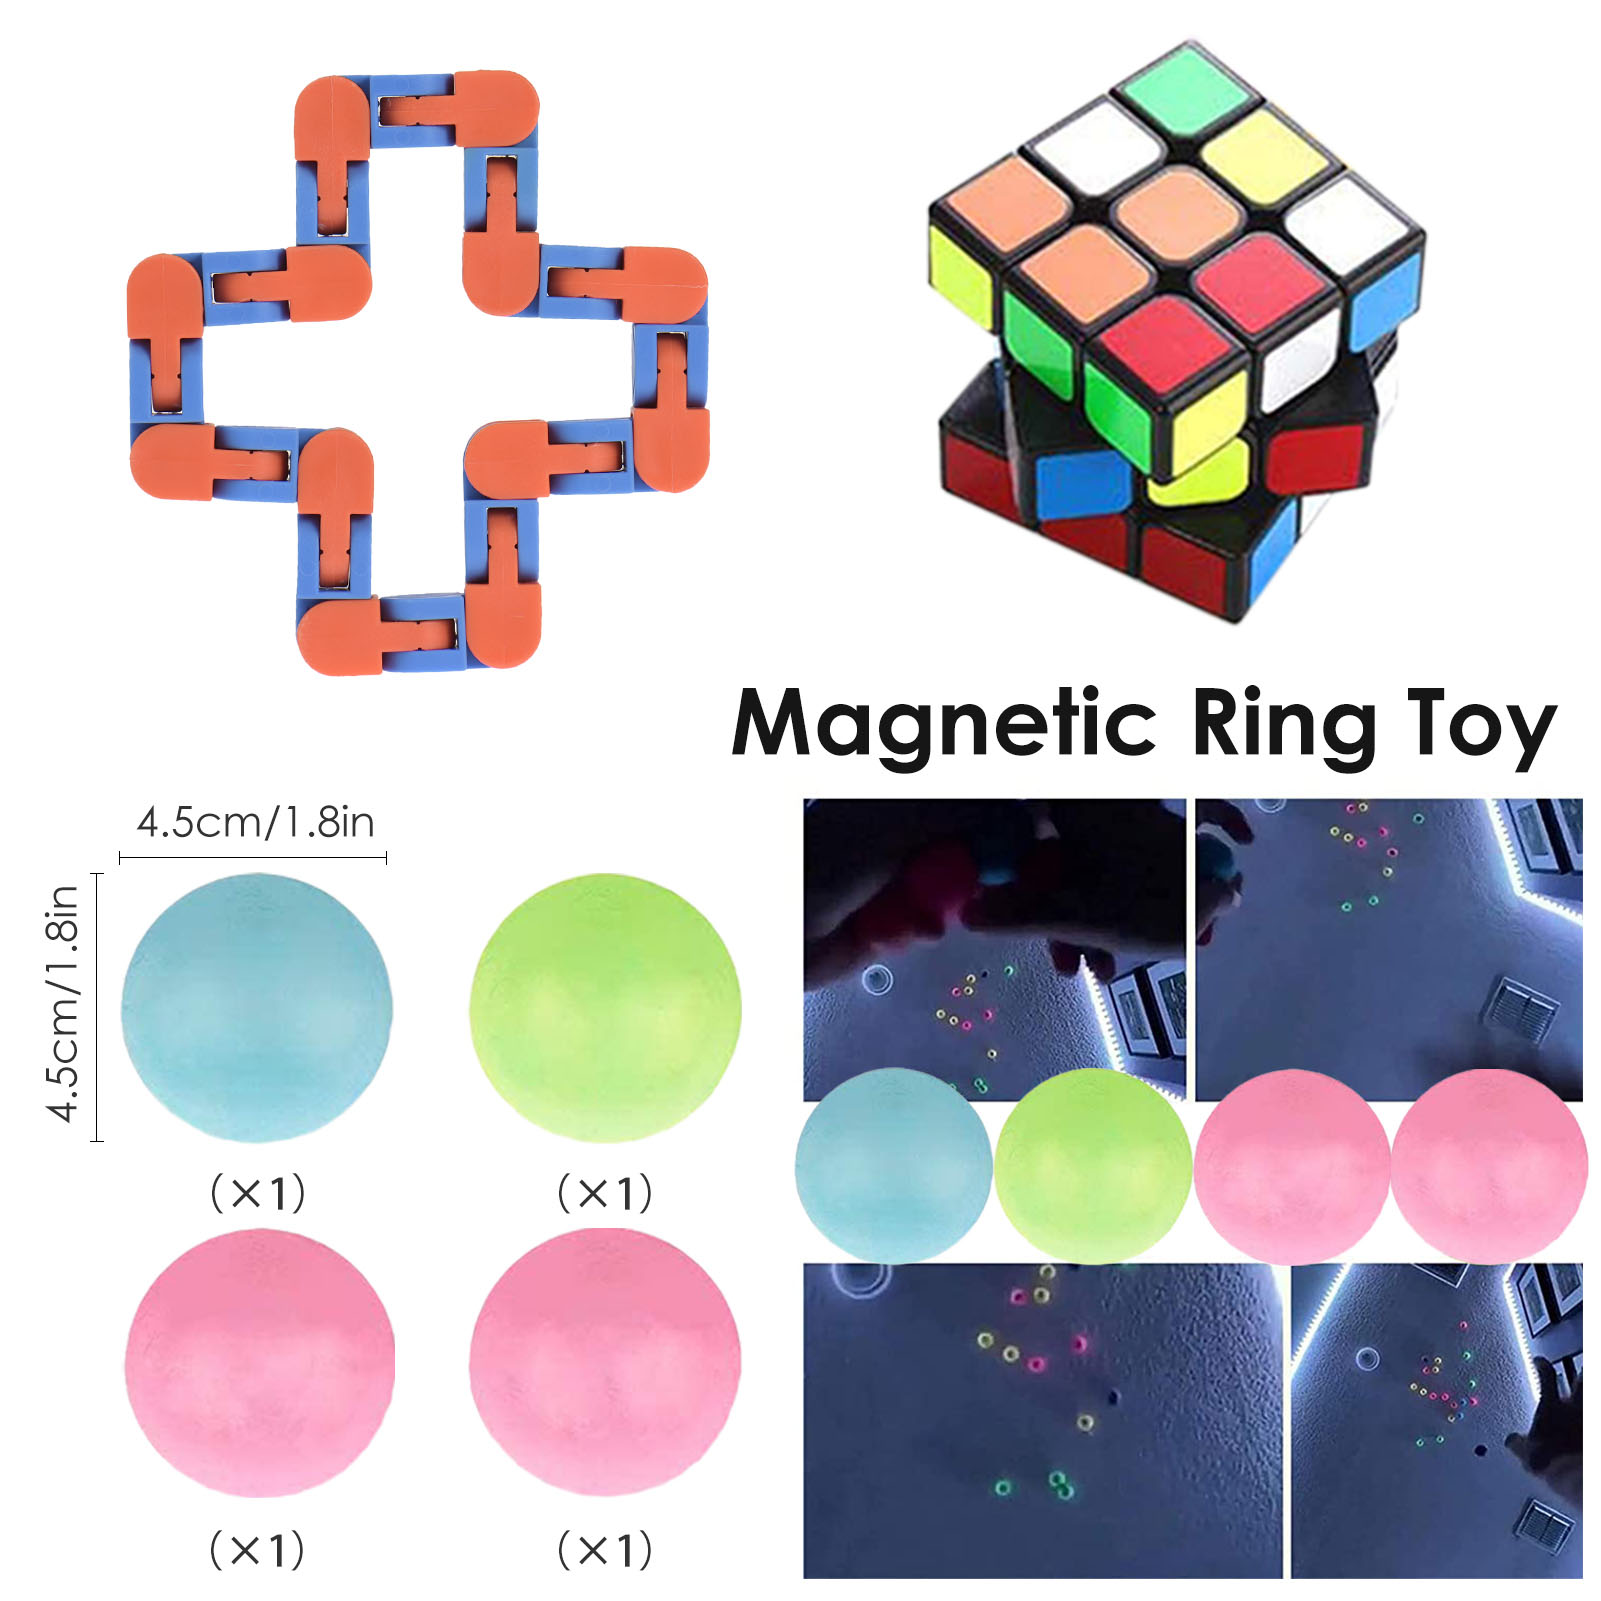 28 Pack Fidget Toys Set Anti Stress Sensory Fidget Toys for Kids Adult Stress Anxiety Relief Sensory Toy Autism Special Needs enlarge